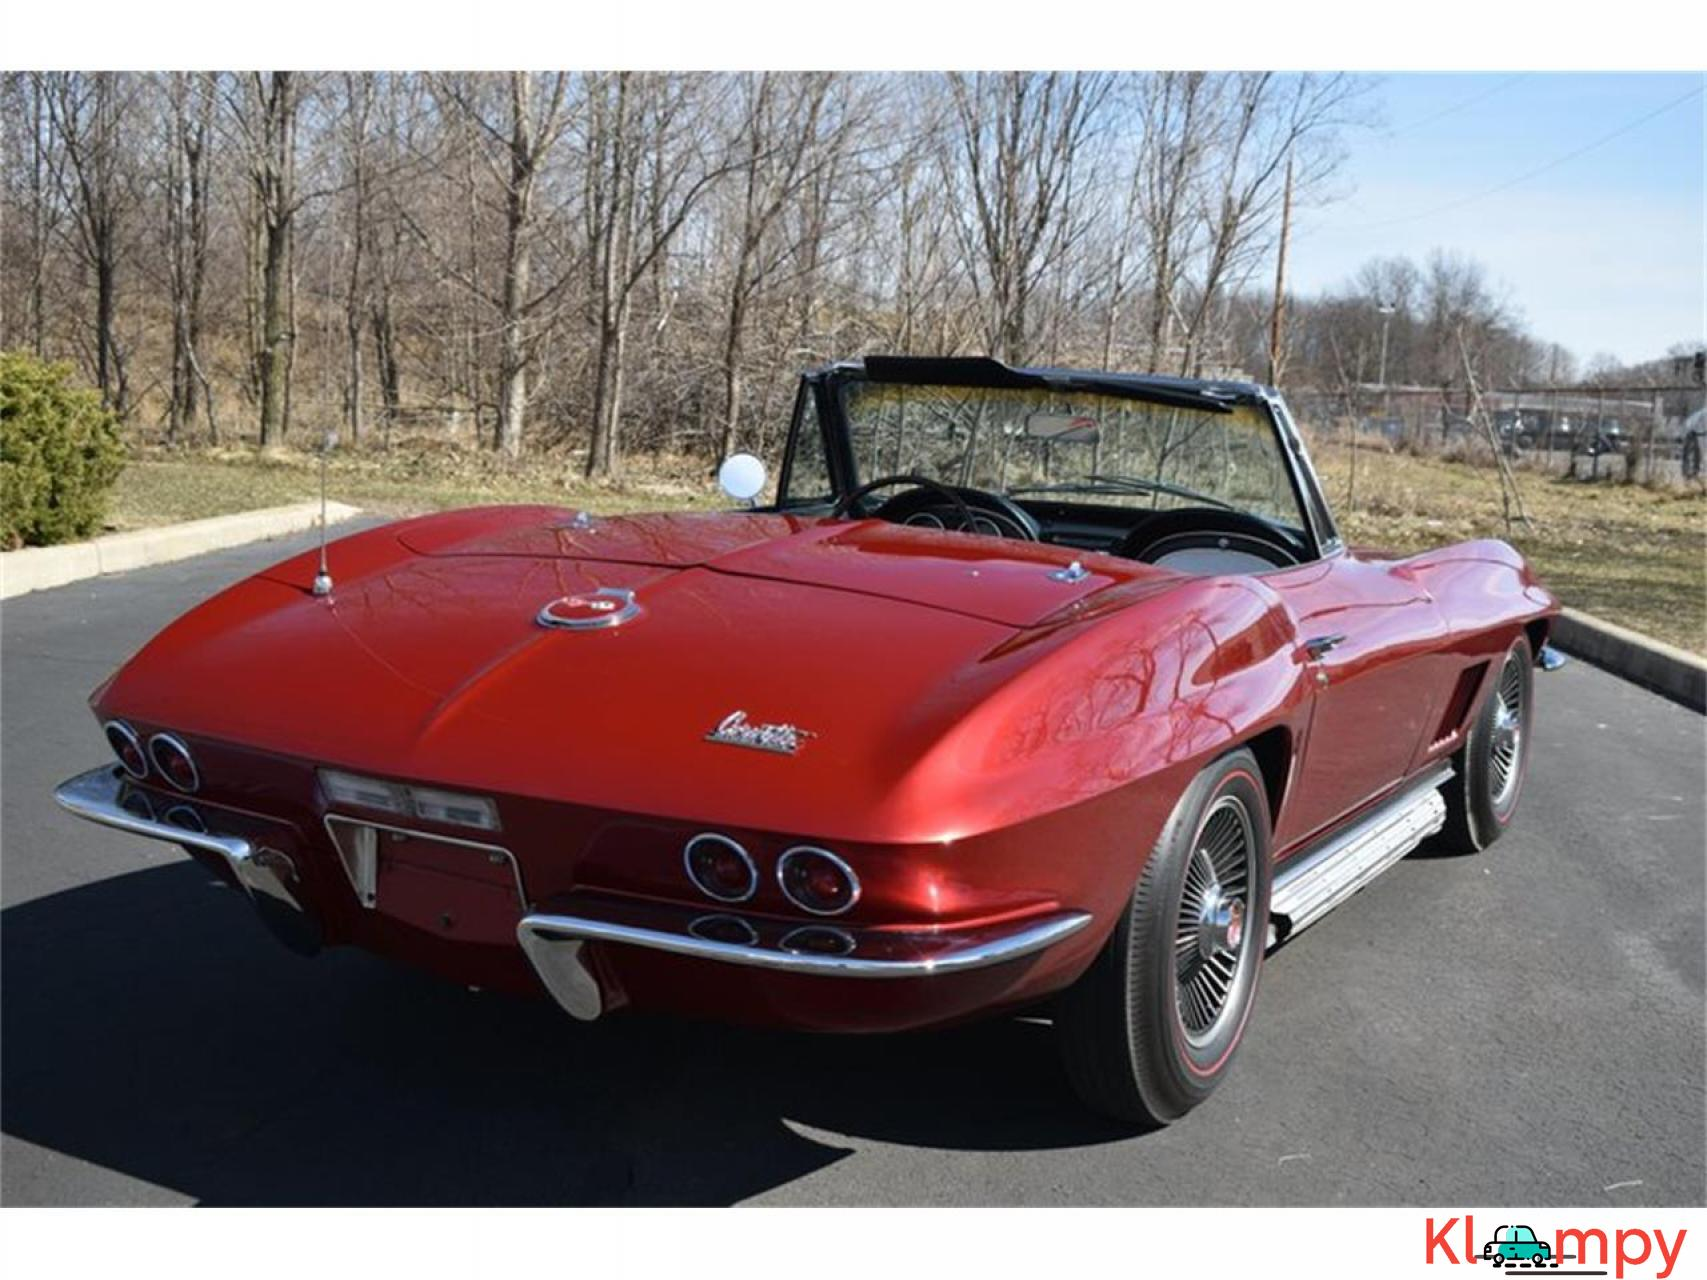 1967 Chevrolet Corvette 350HP 327 Cu In V8 - 7/20